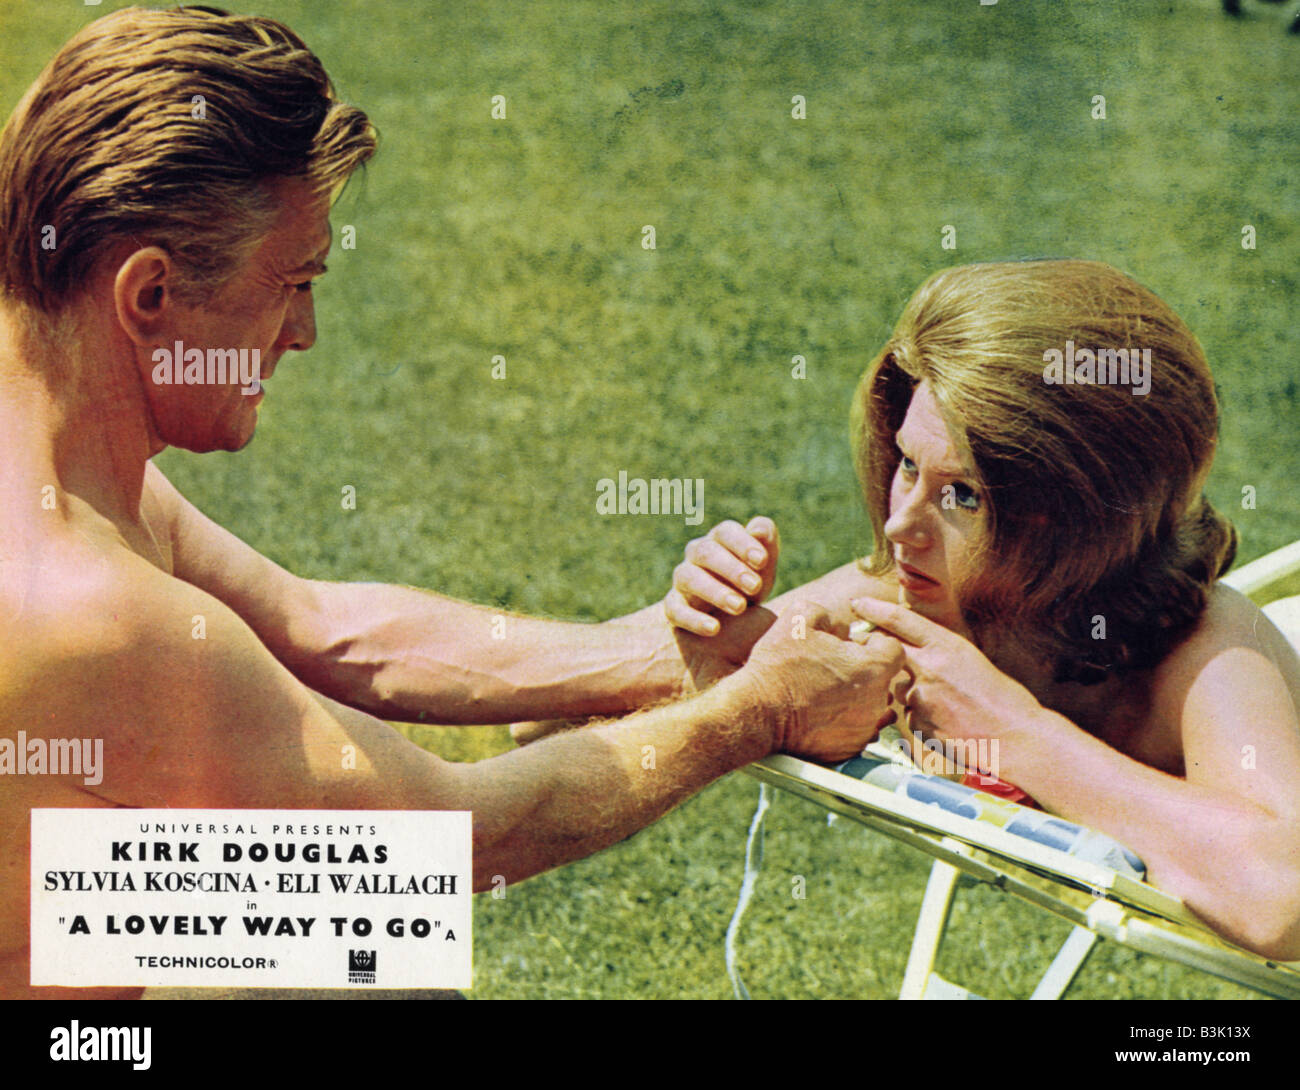 A LOVELY WAY TO GO 1968 Universal Film With Kirk Douglas And Sylva Koscina Aka